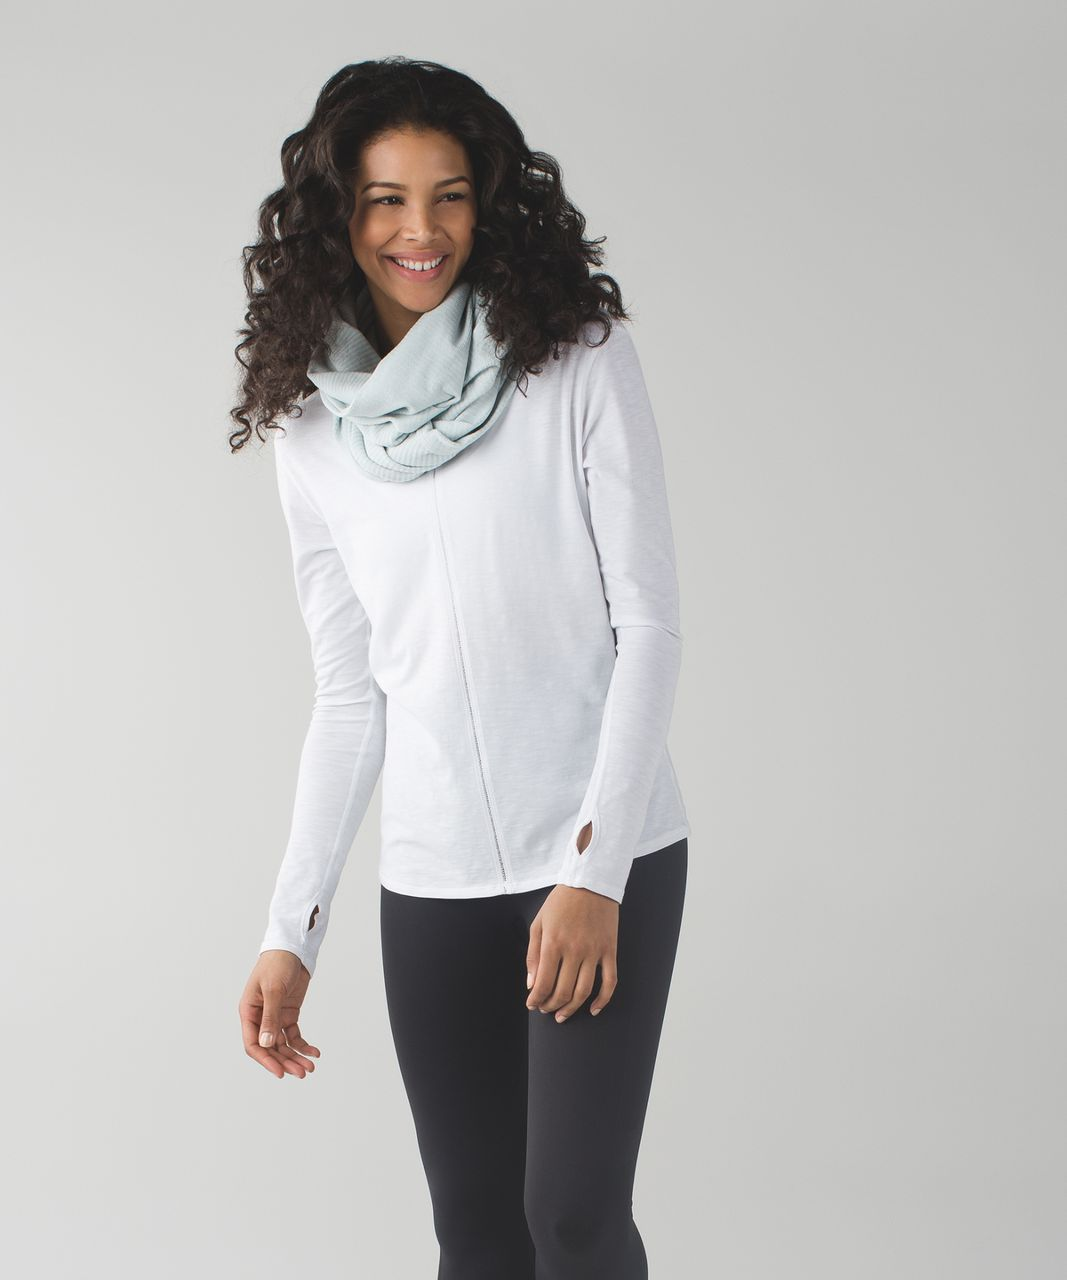 Lululemon Vinyasa Scarf *Rulu - Mini Check Pique White Heathered Minty Grey